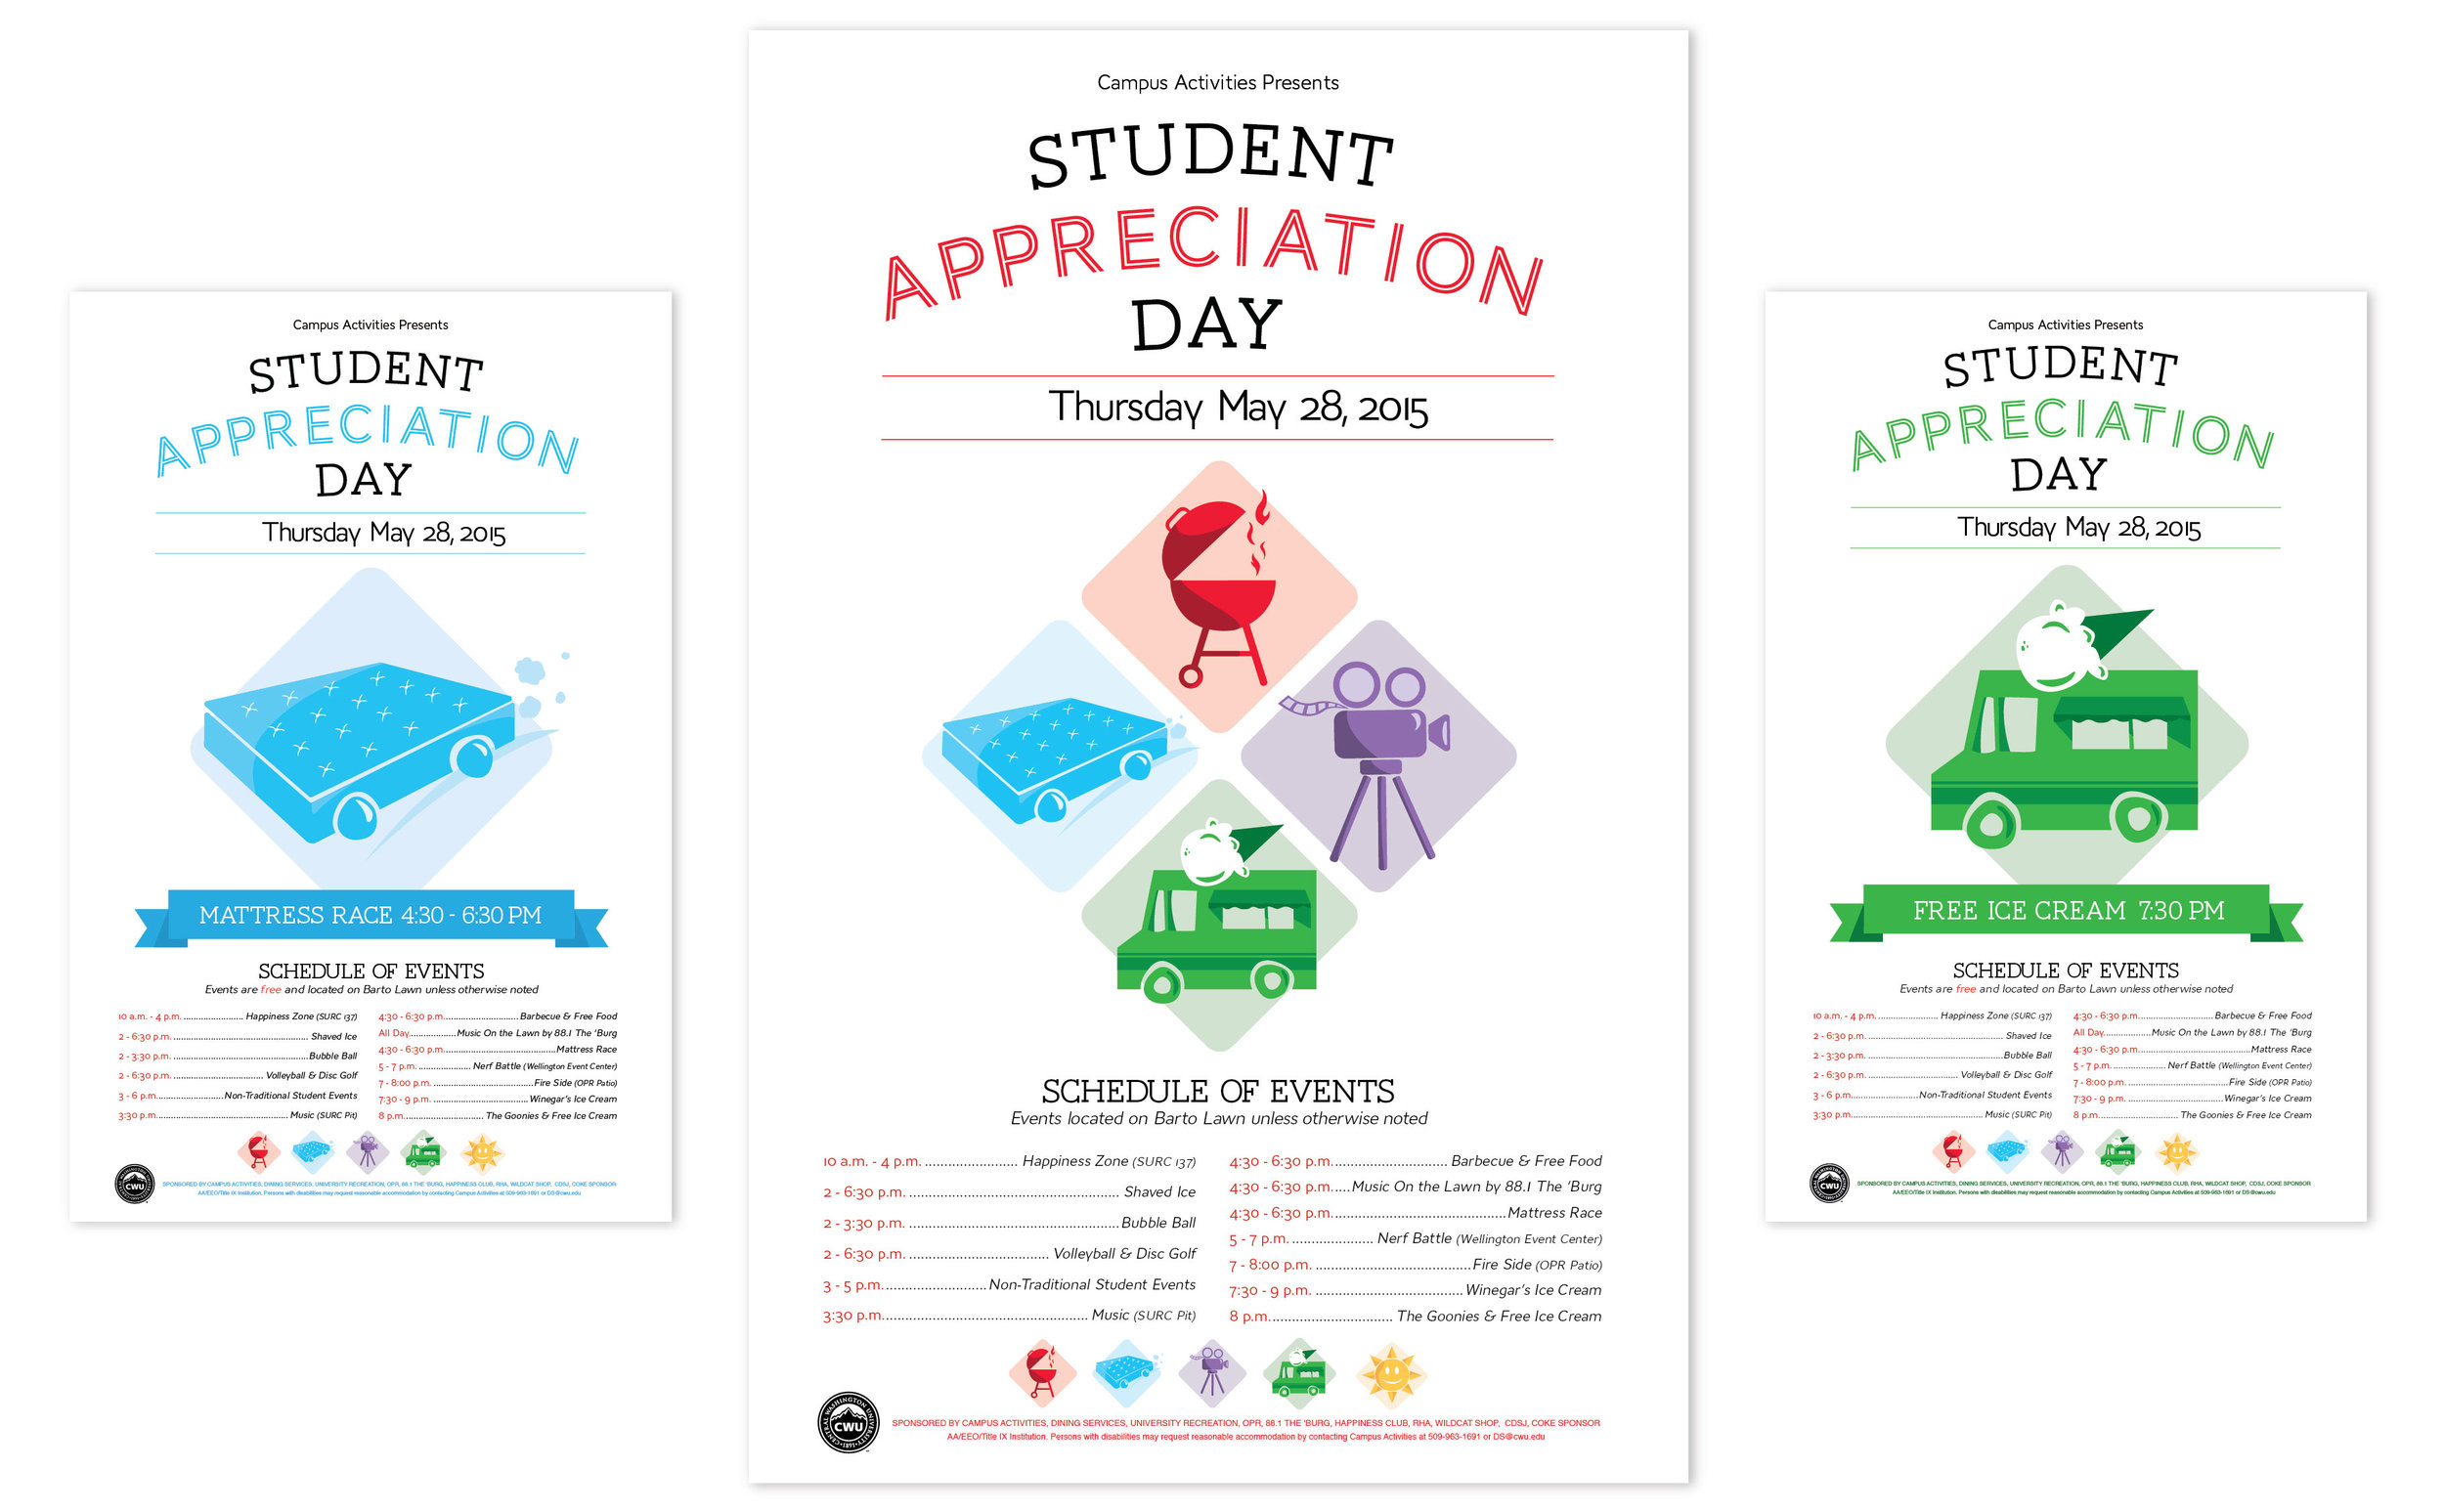 Awarded the '2015 Sarah Spurgeon Gallery Award in Graphic Design' for the Student Appreciation Day poster series.